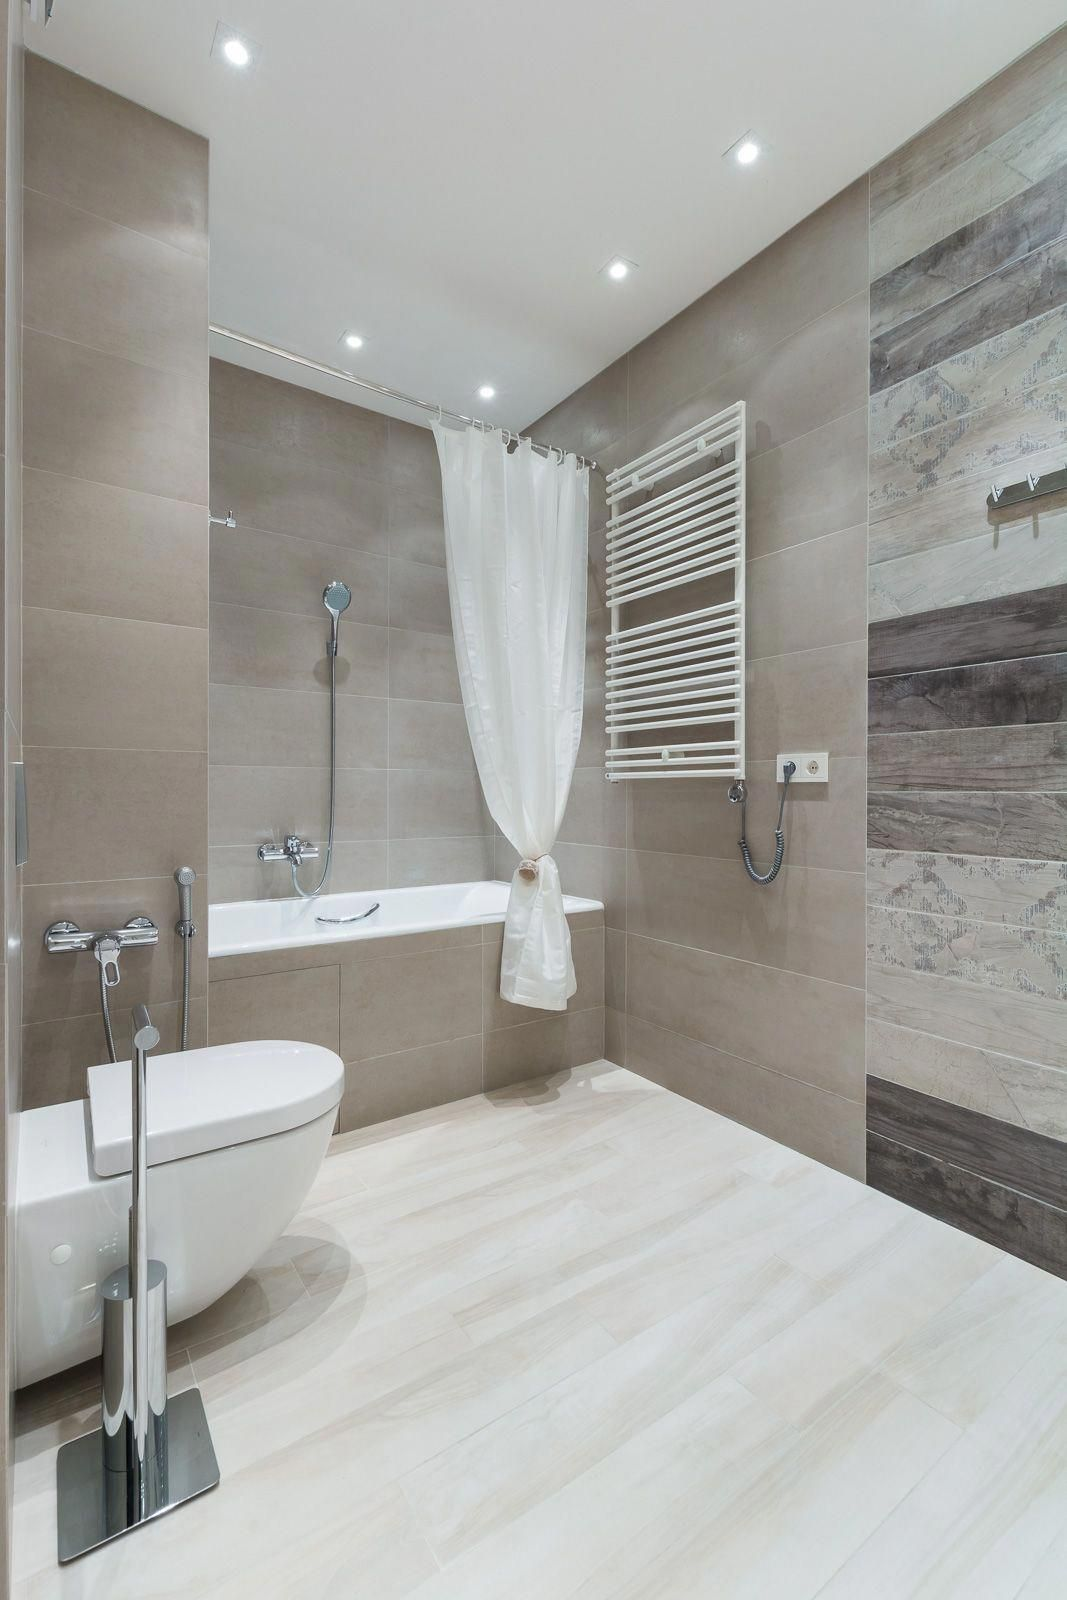 Idea, tricks, together with guide in the interest of obtaining the finest end result as well as making the optimum utilization of Restroom Remodel Ideas #restroomremodel